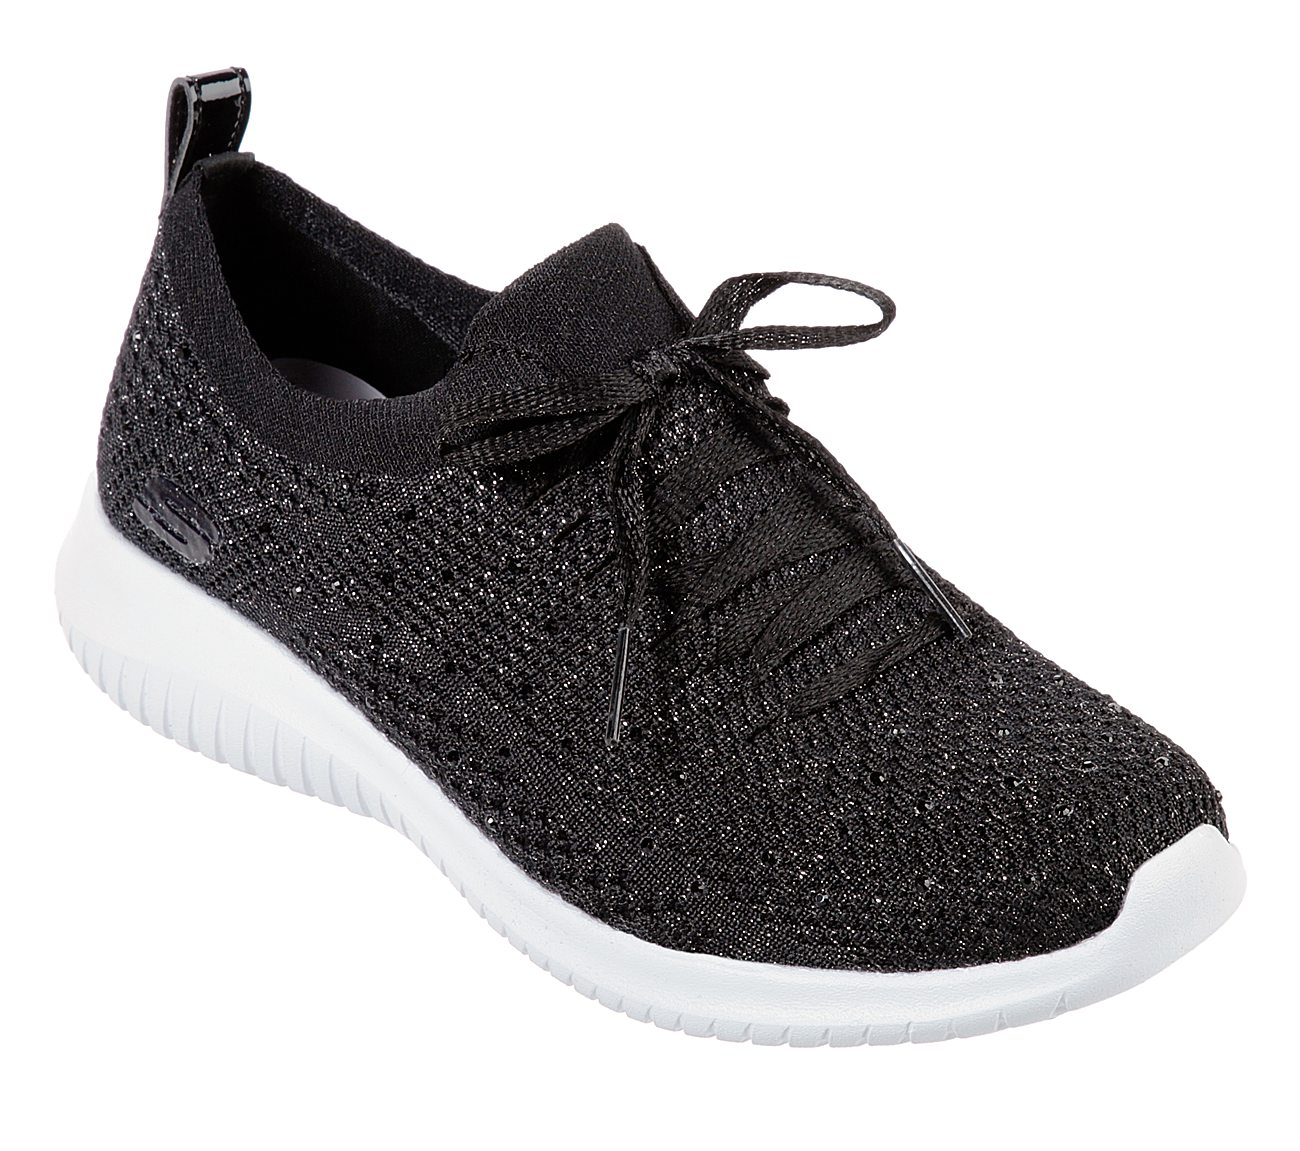 Details about Skechers Ultra Flex Strolling Out Womens Black Trainers Sport Casual Shoes